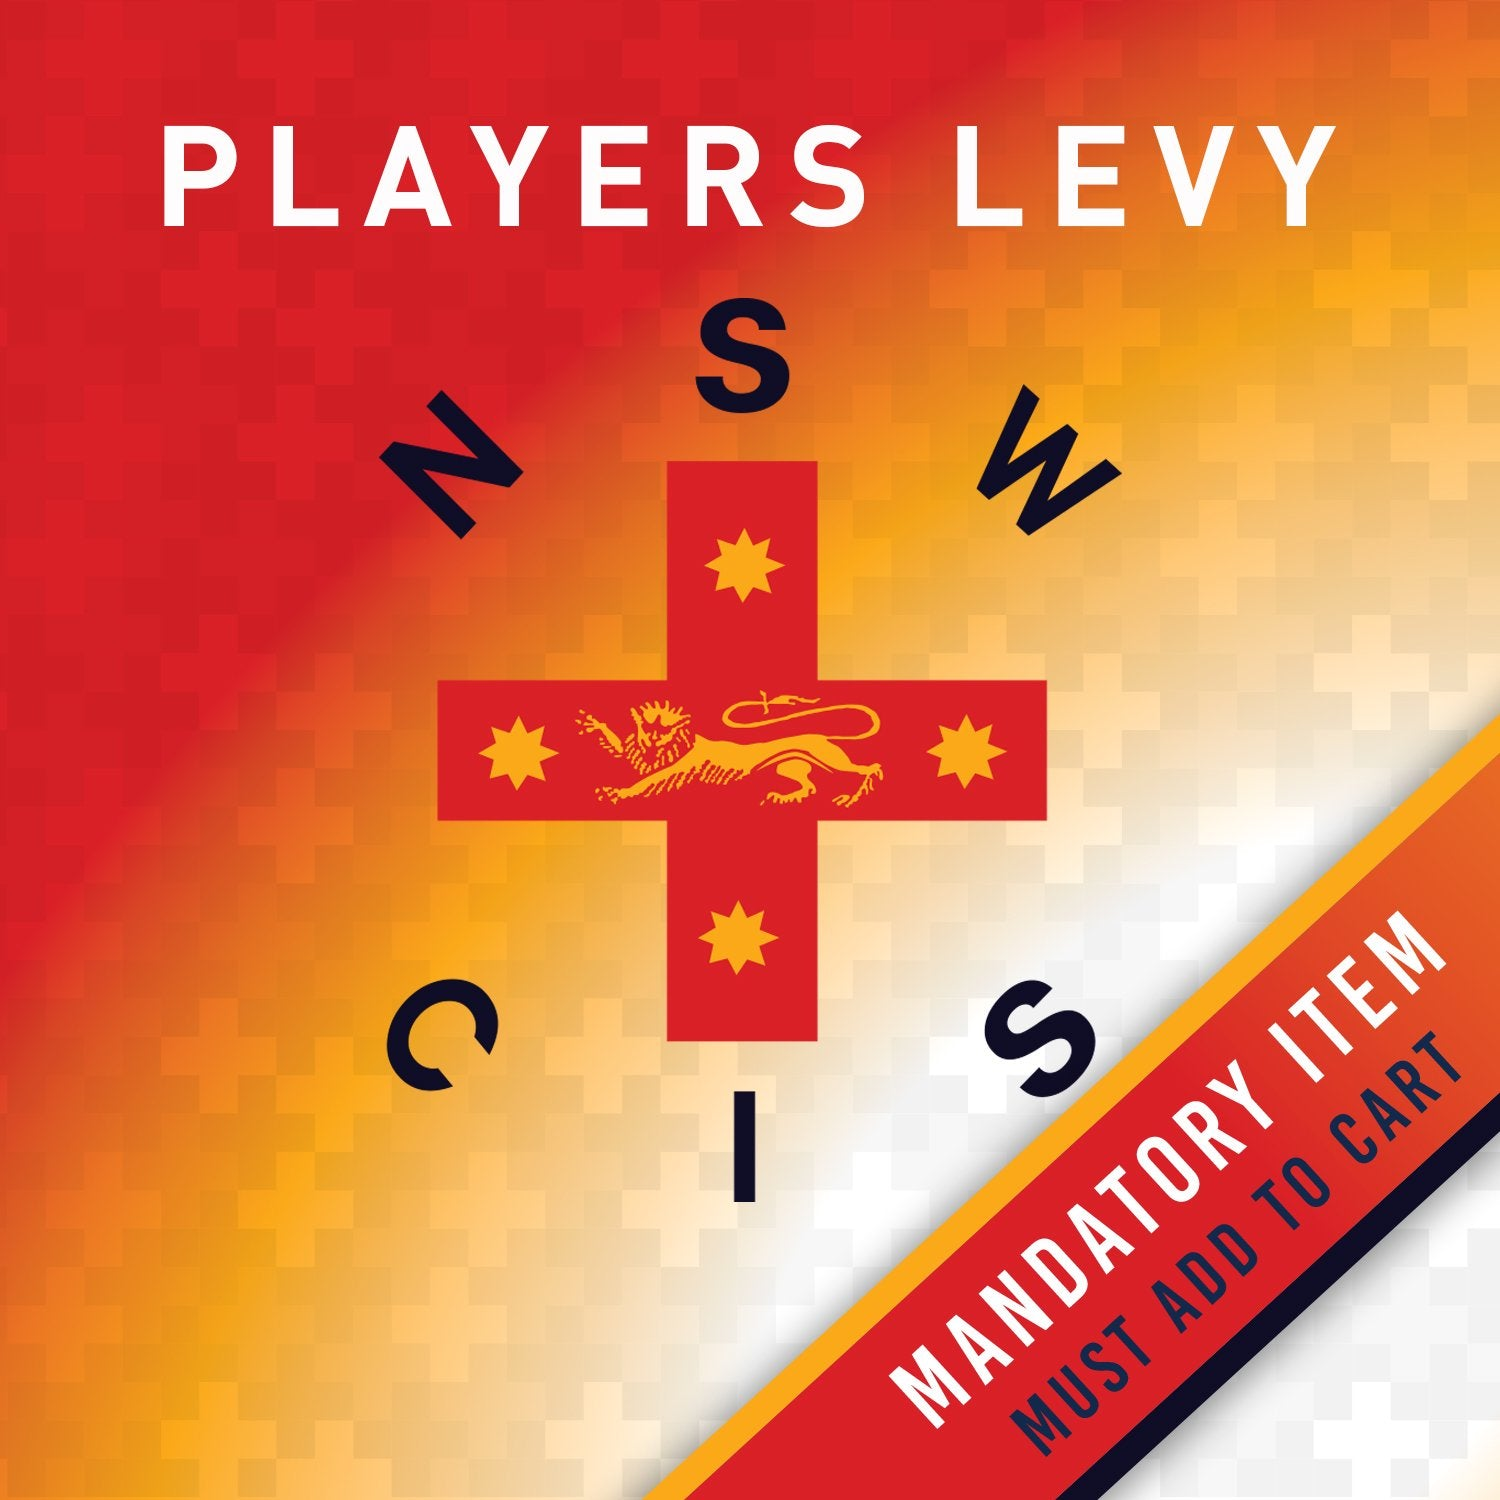 MANDATORY ITEM - PLAYERS LEVY - NSW CIS Primary Swimming